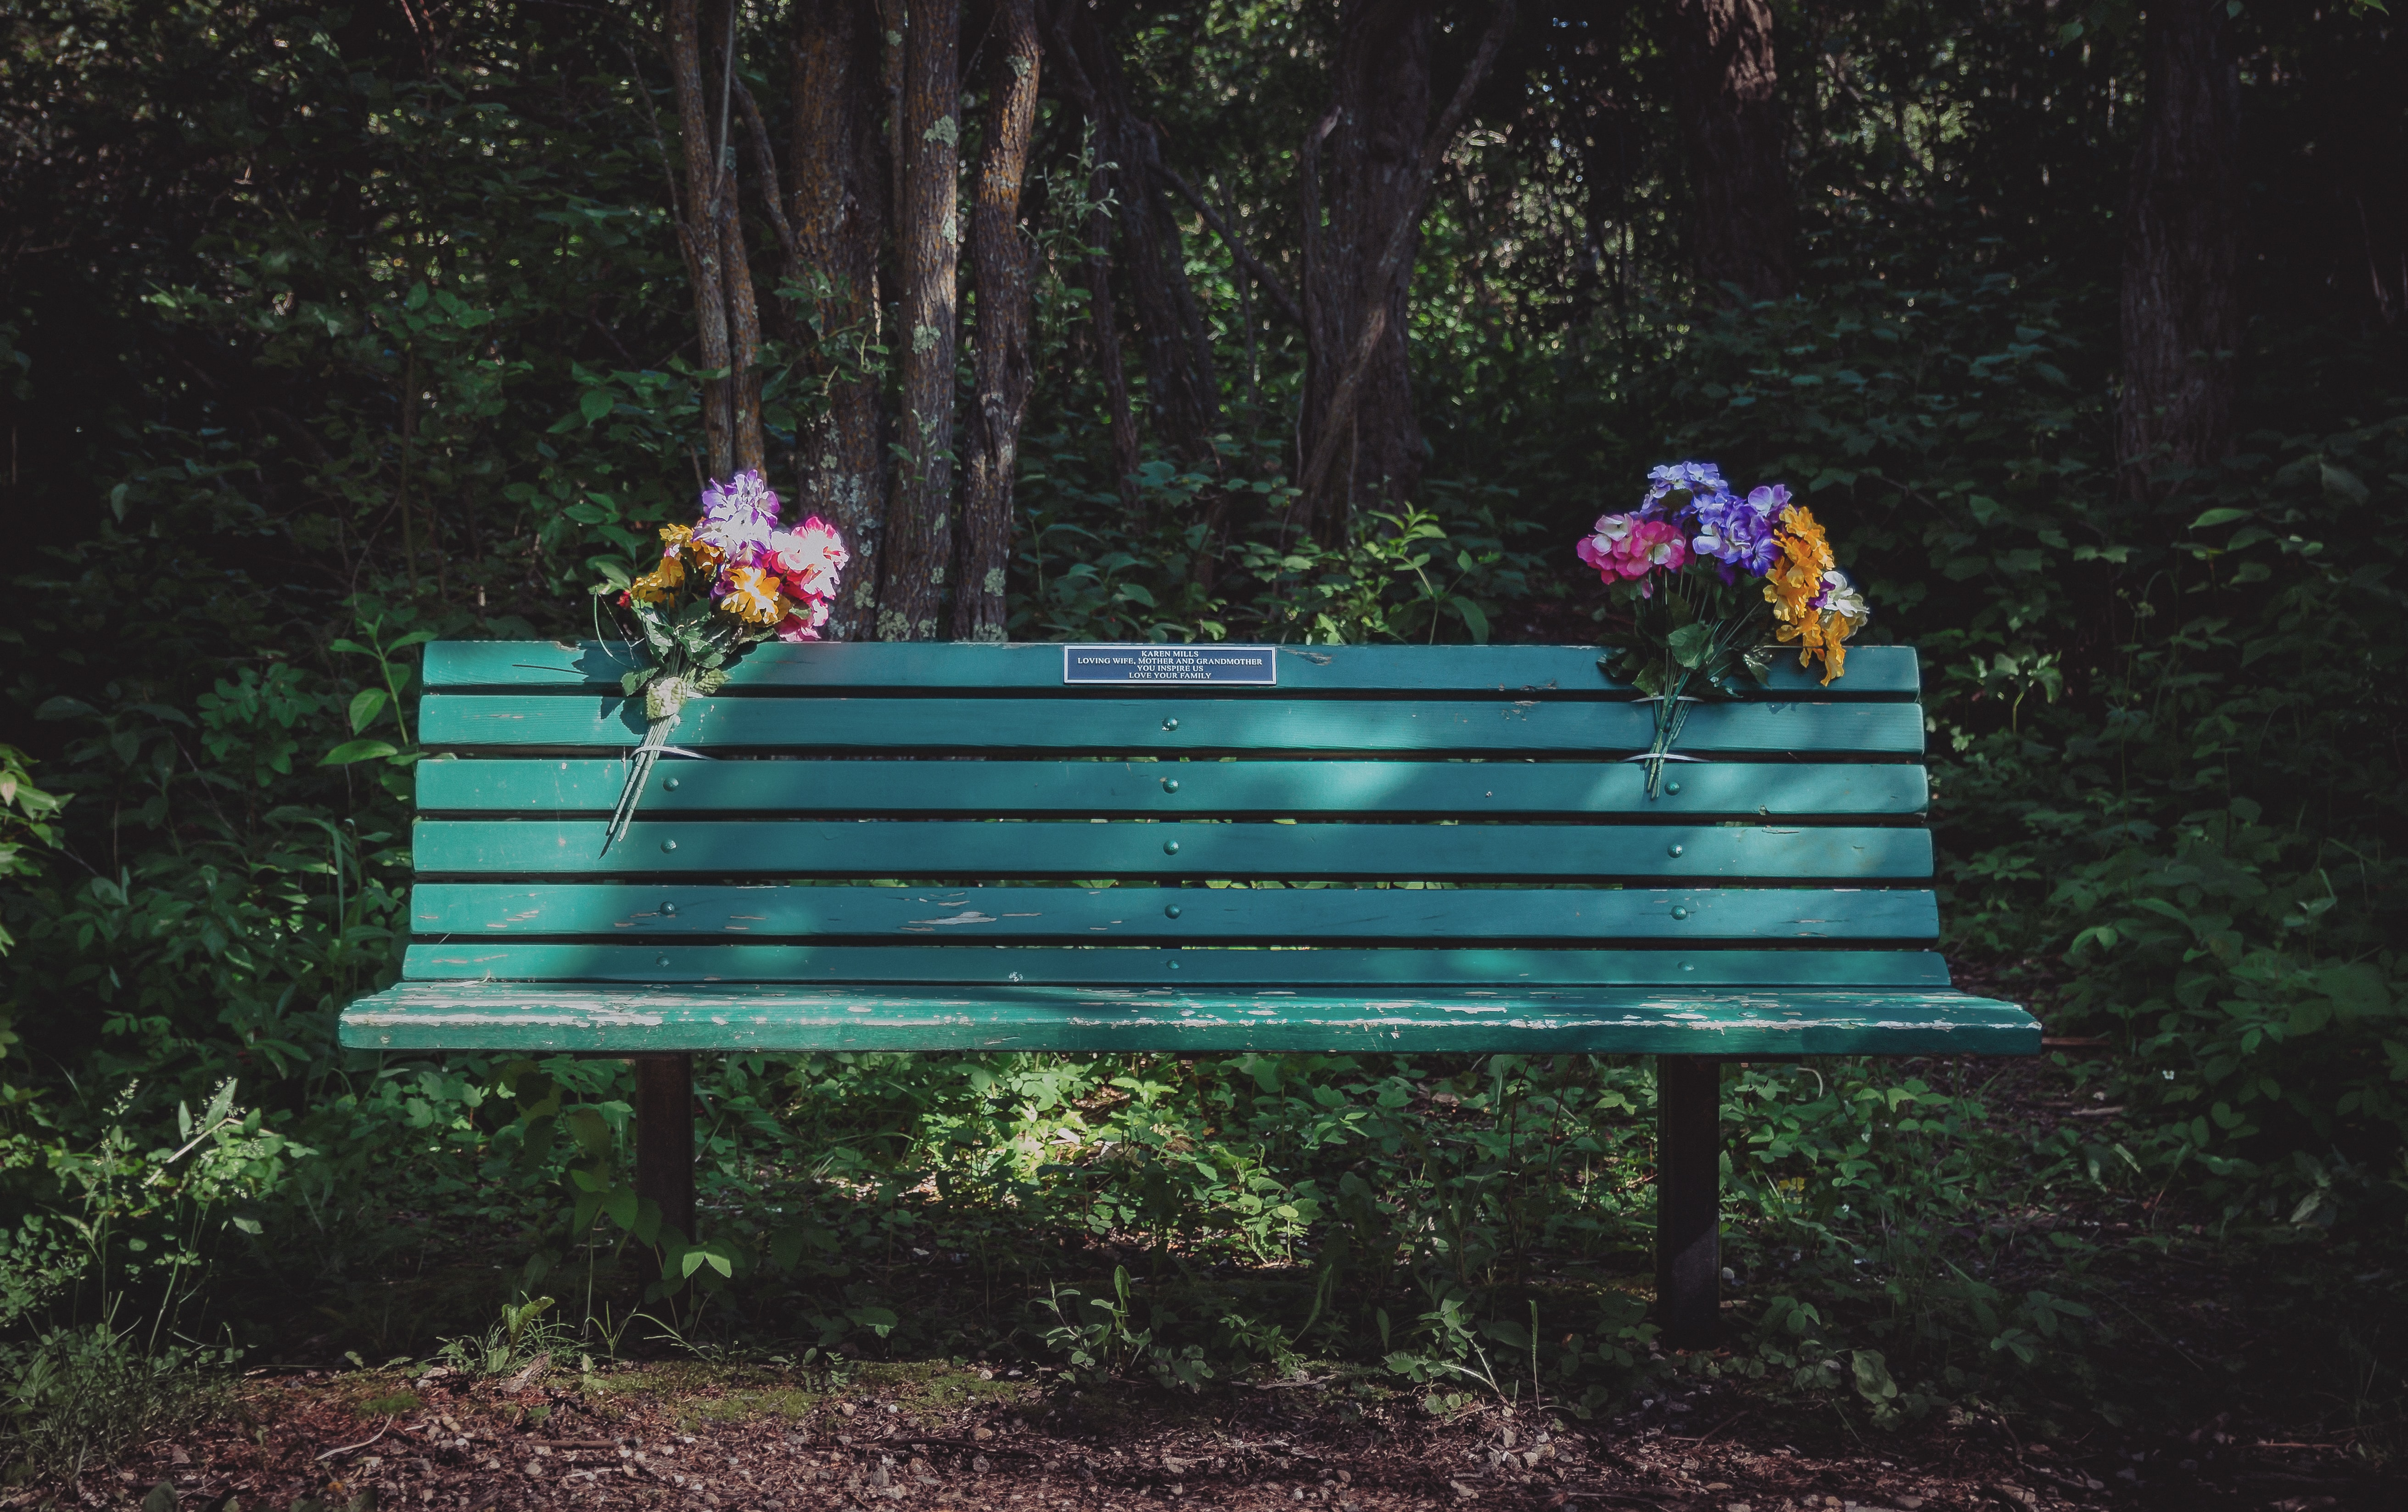 Two colorful flower bouquets attached to a green park bench with a plaque on it